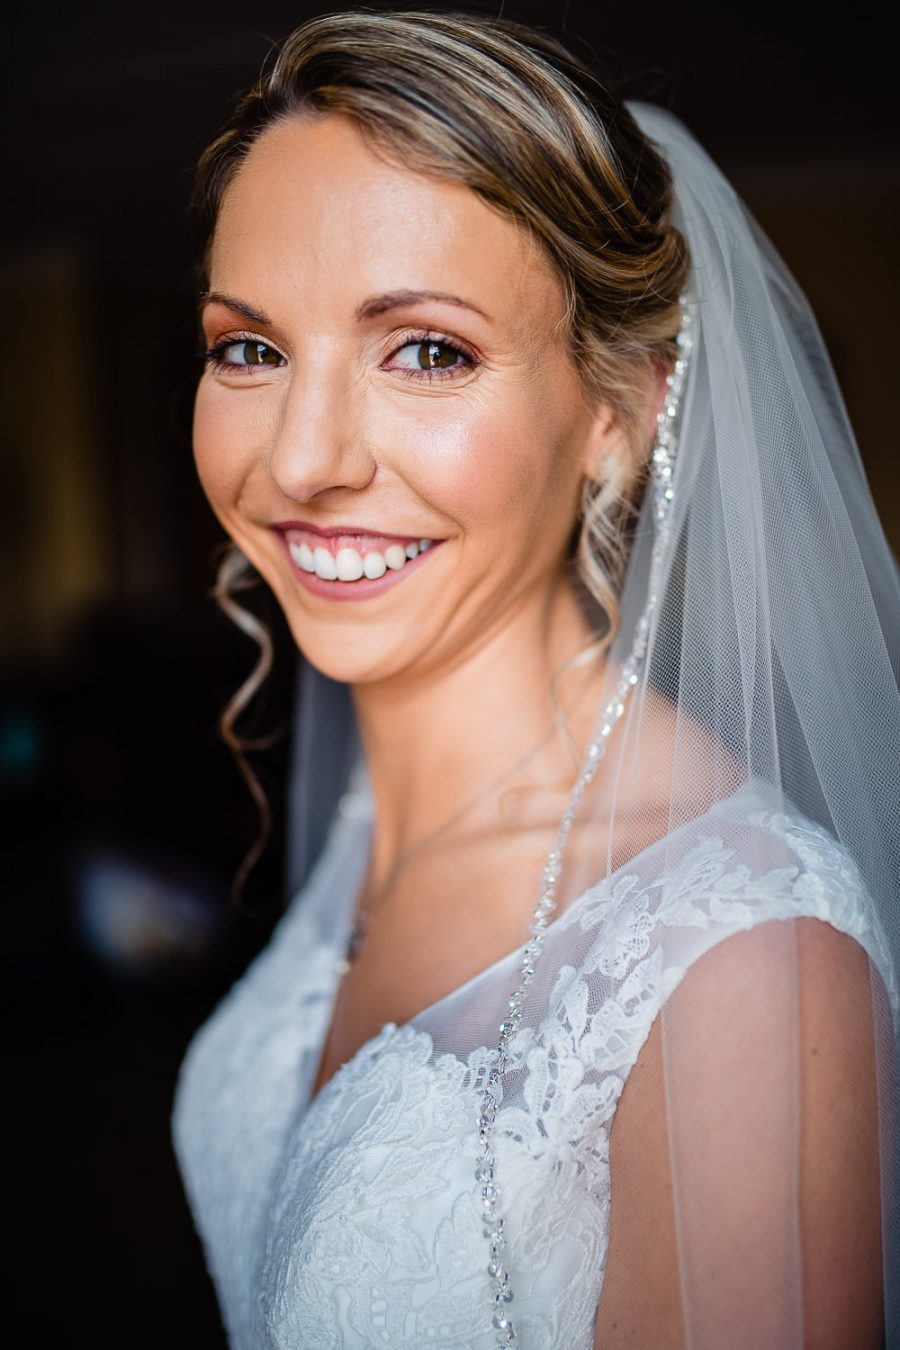 smiling bride on wedding day